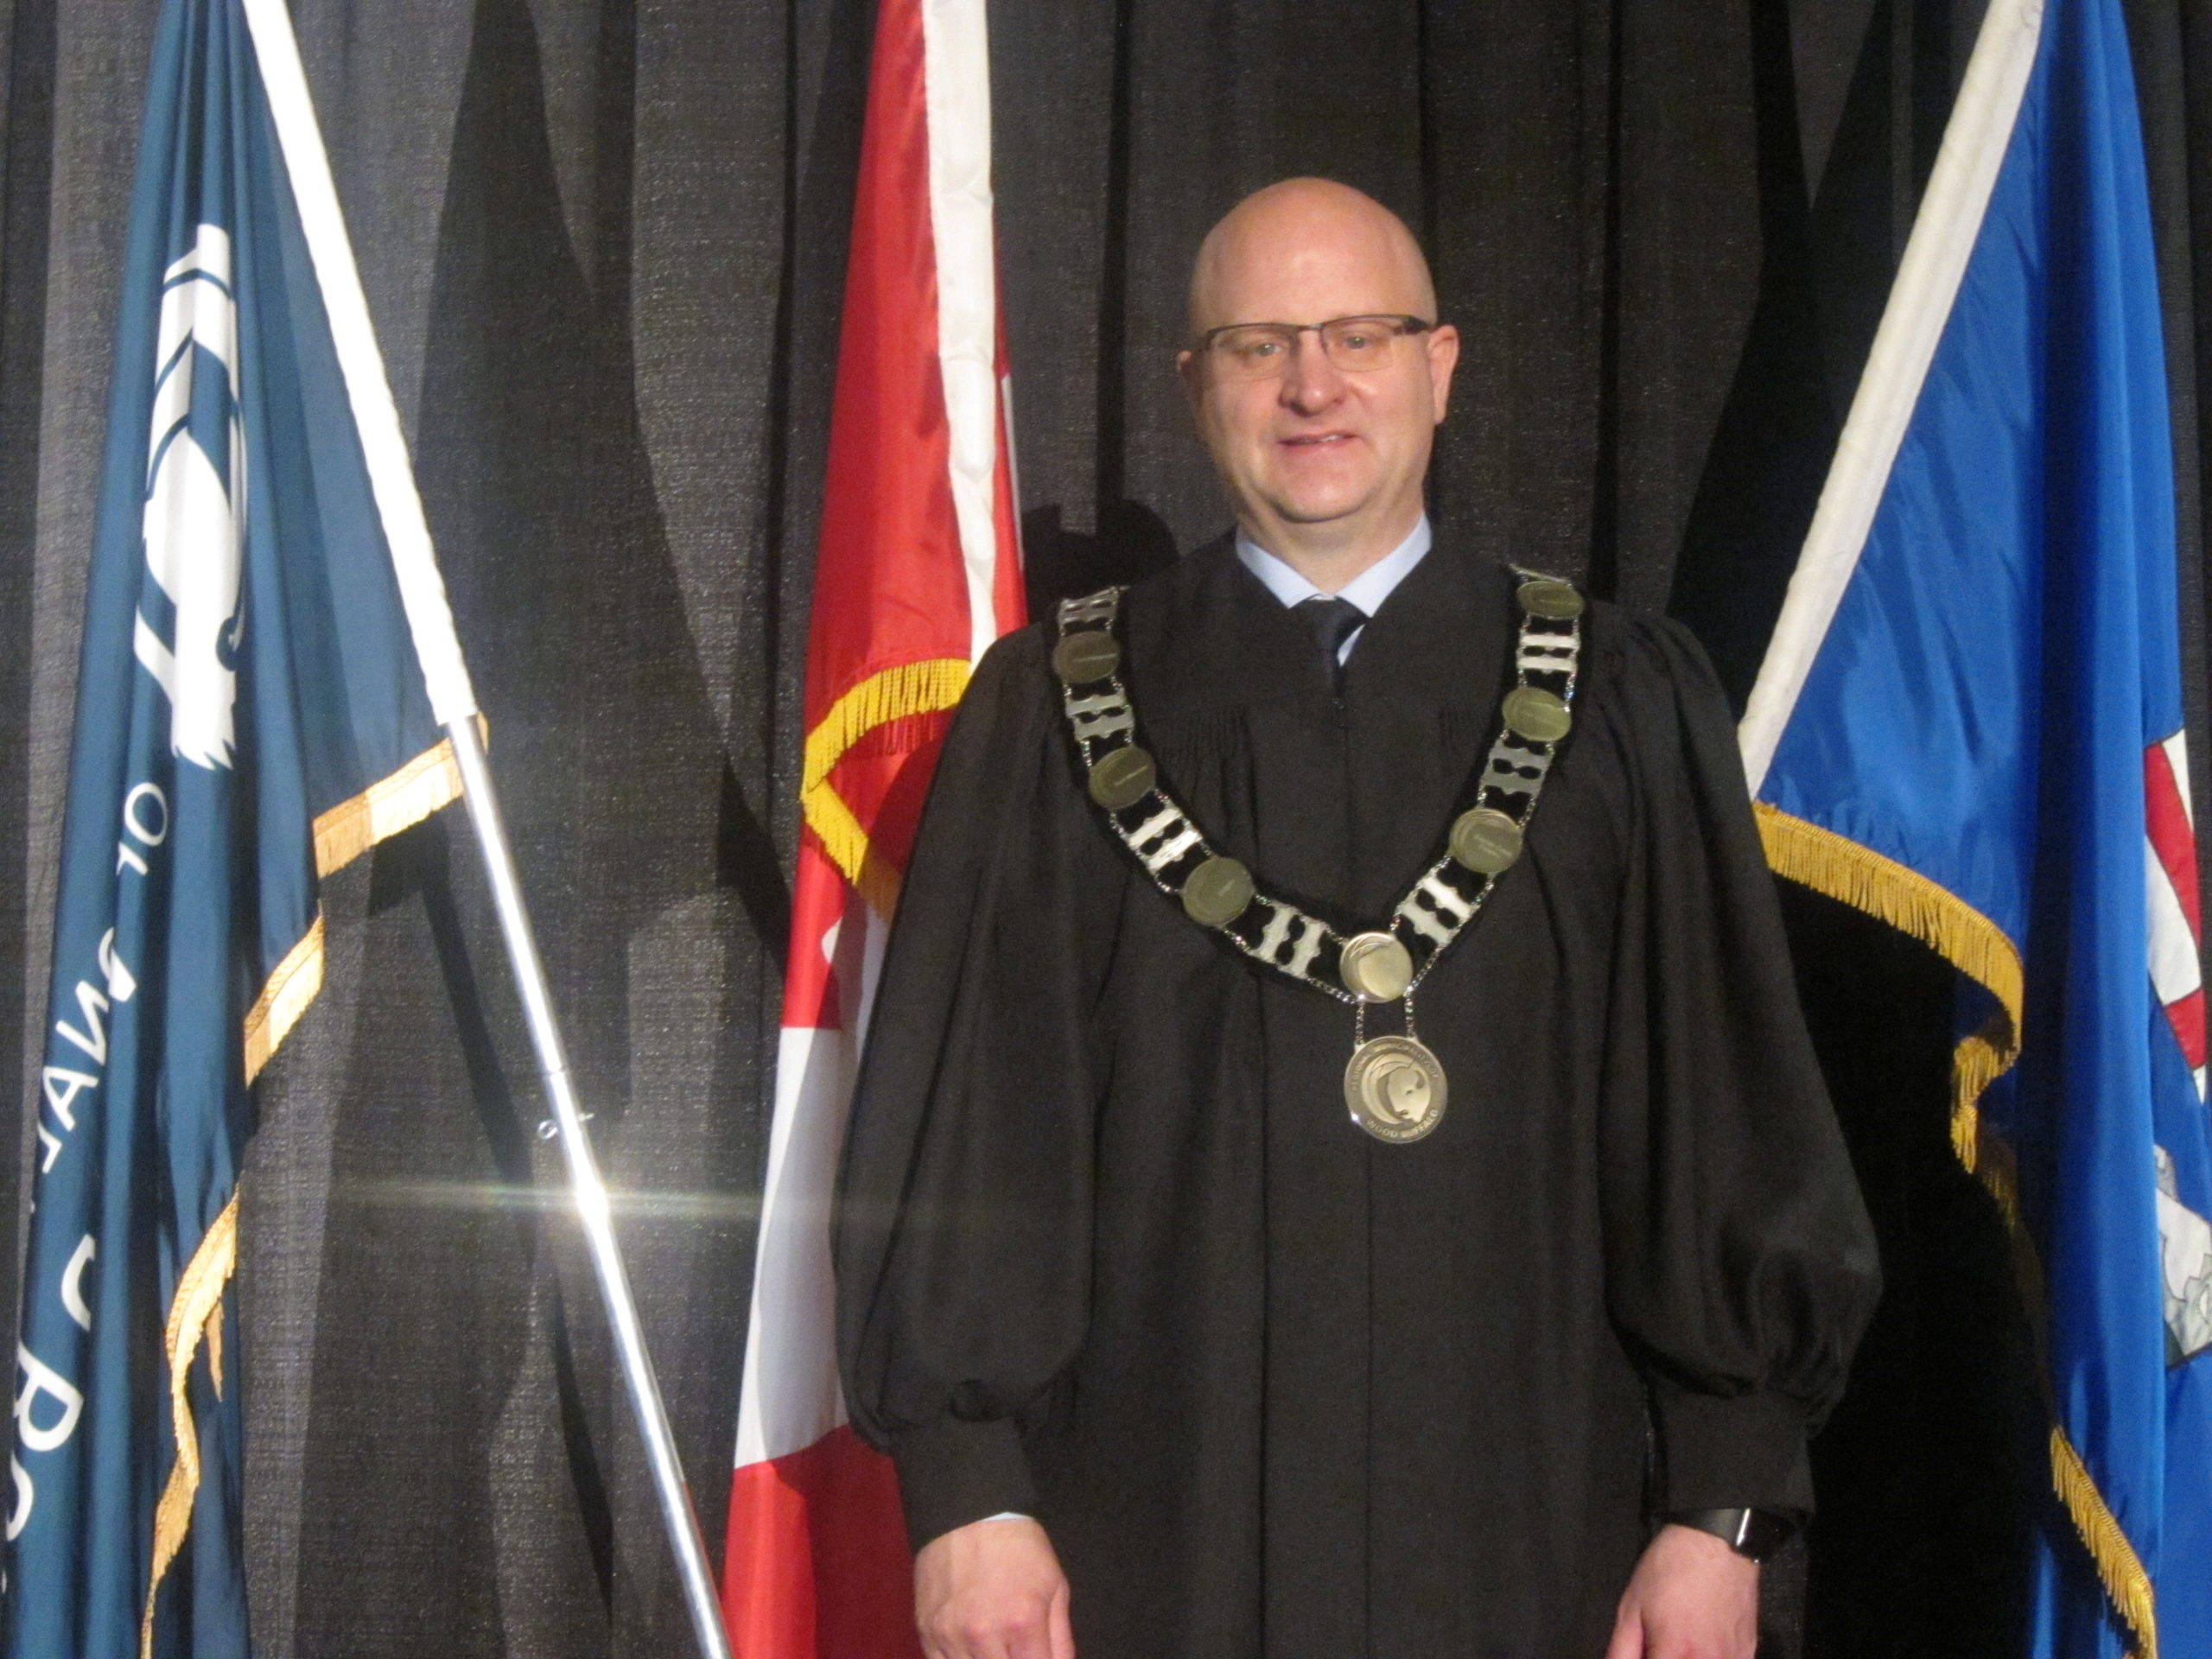 Mayor Scott Looking at 2018 as First Step Towards Greater Region